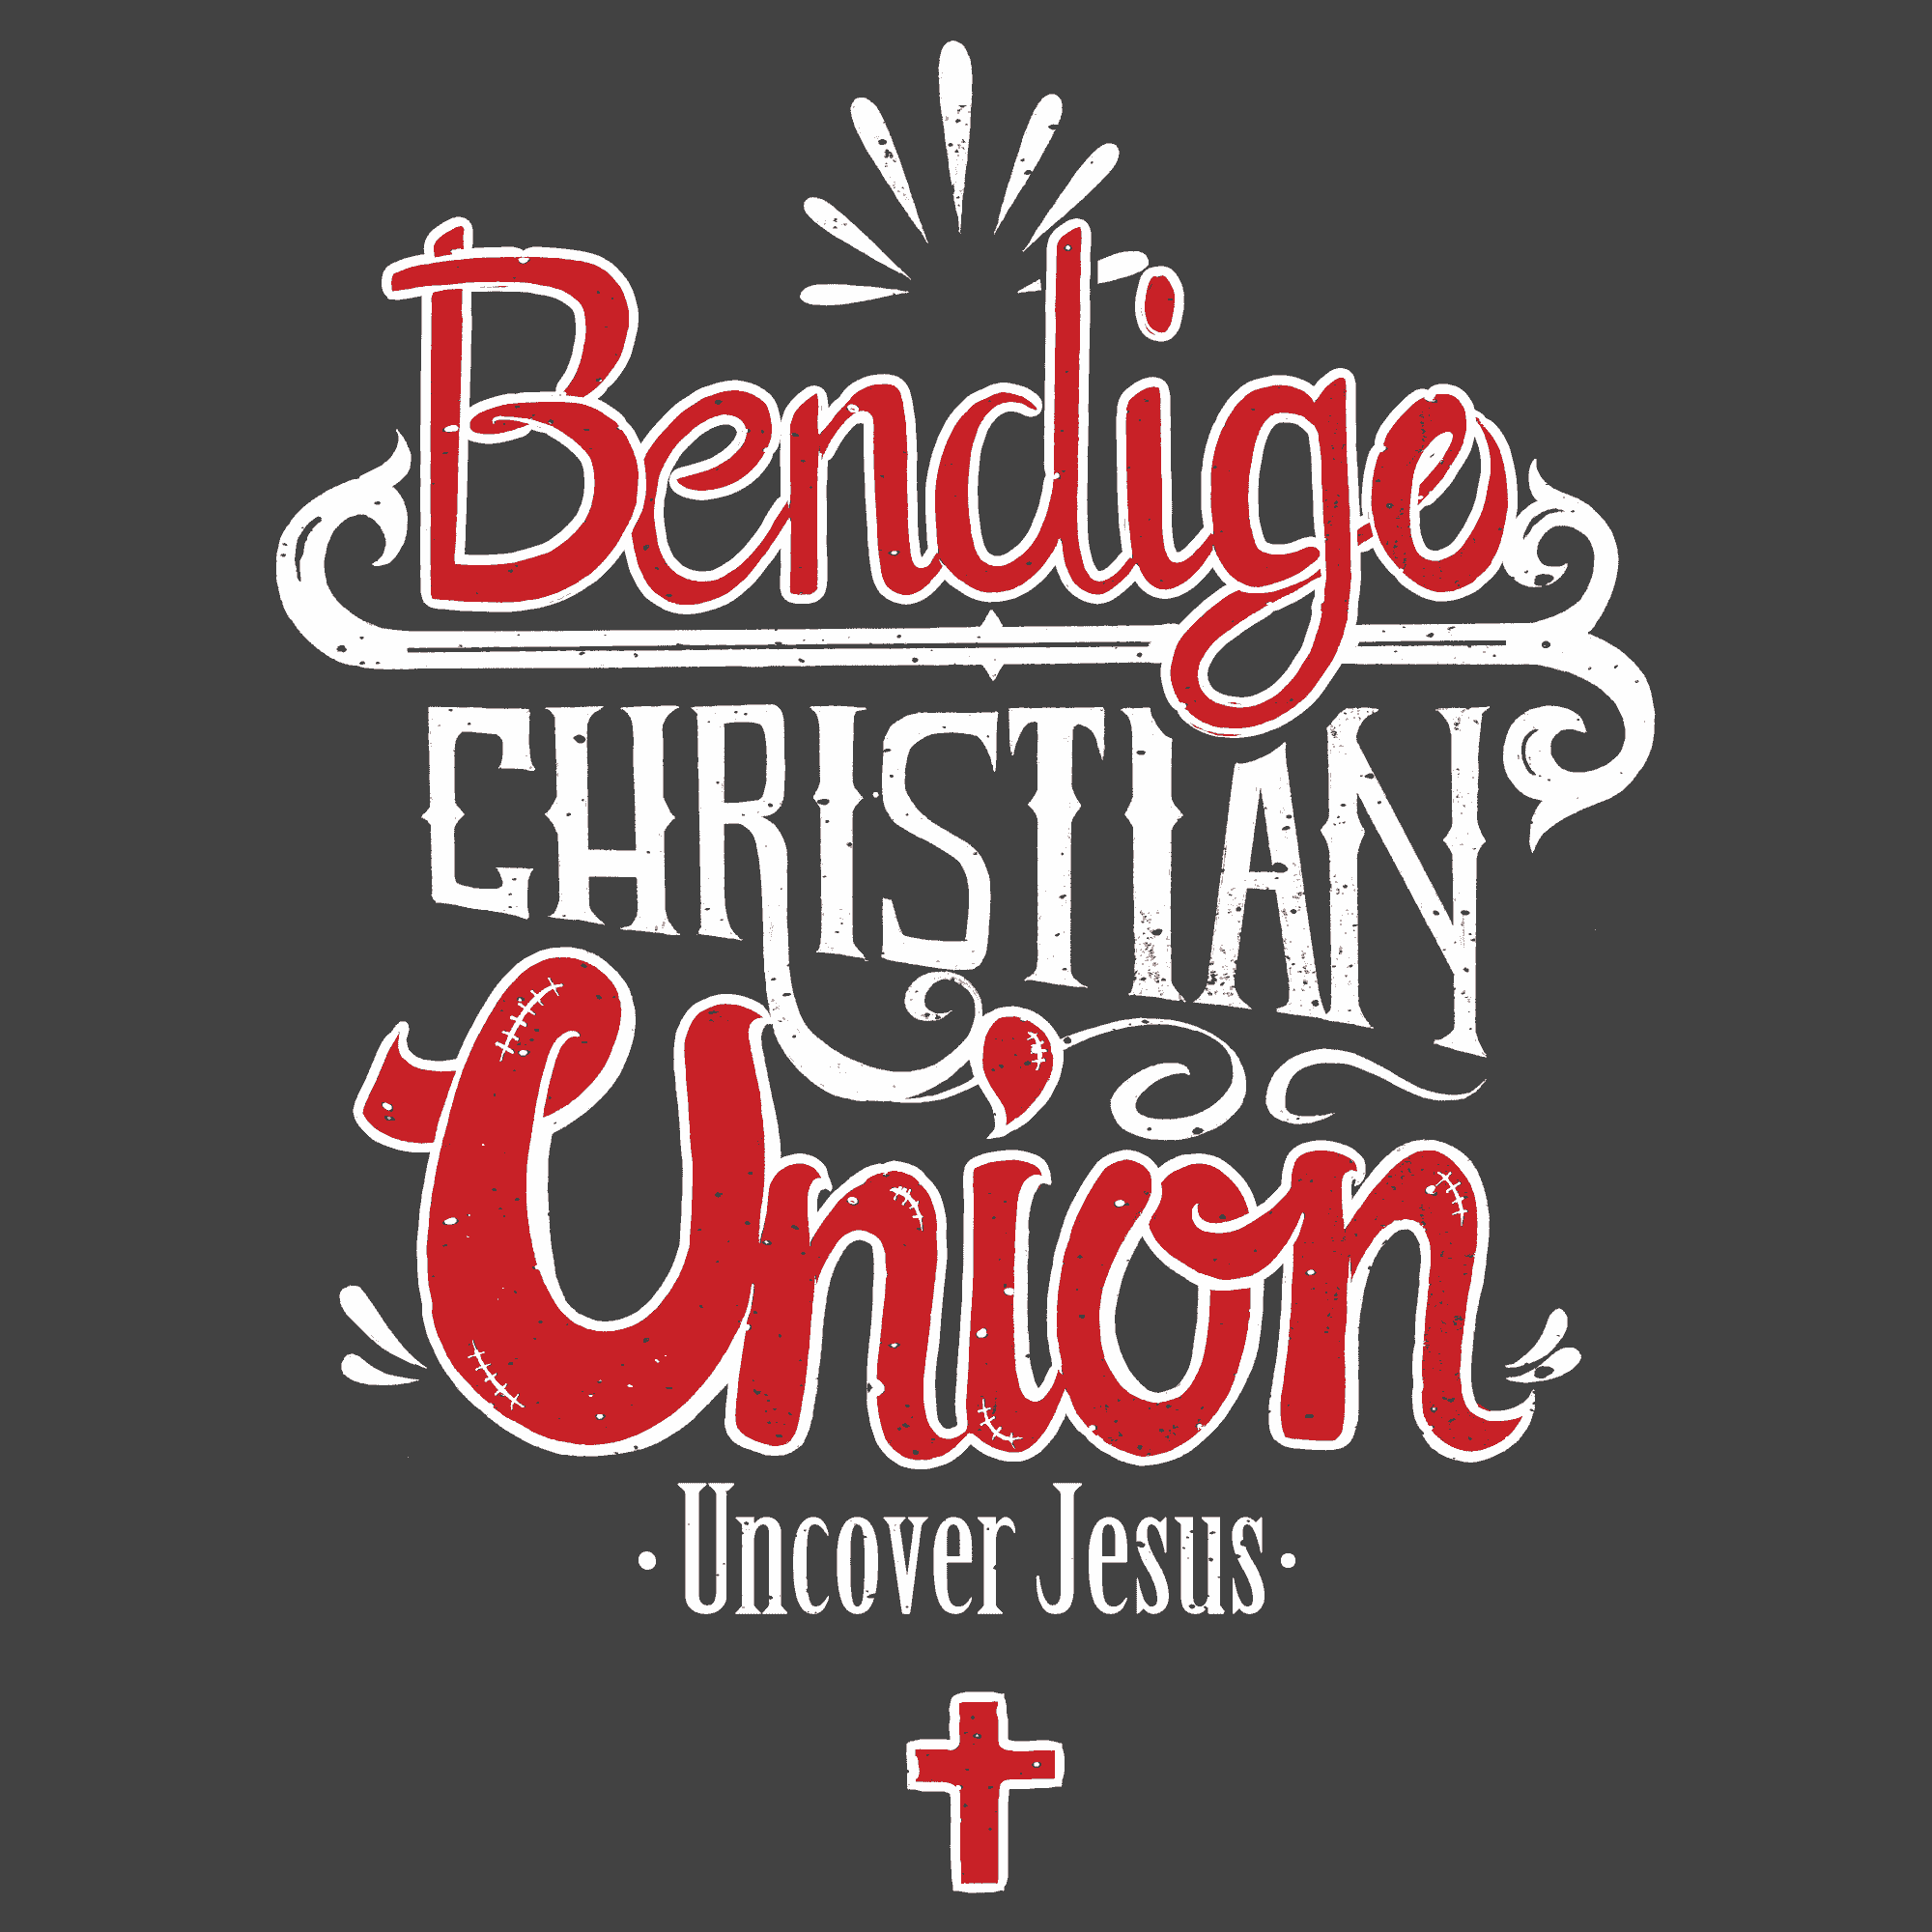 Bendigo Christian Union